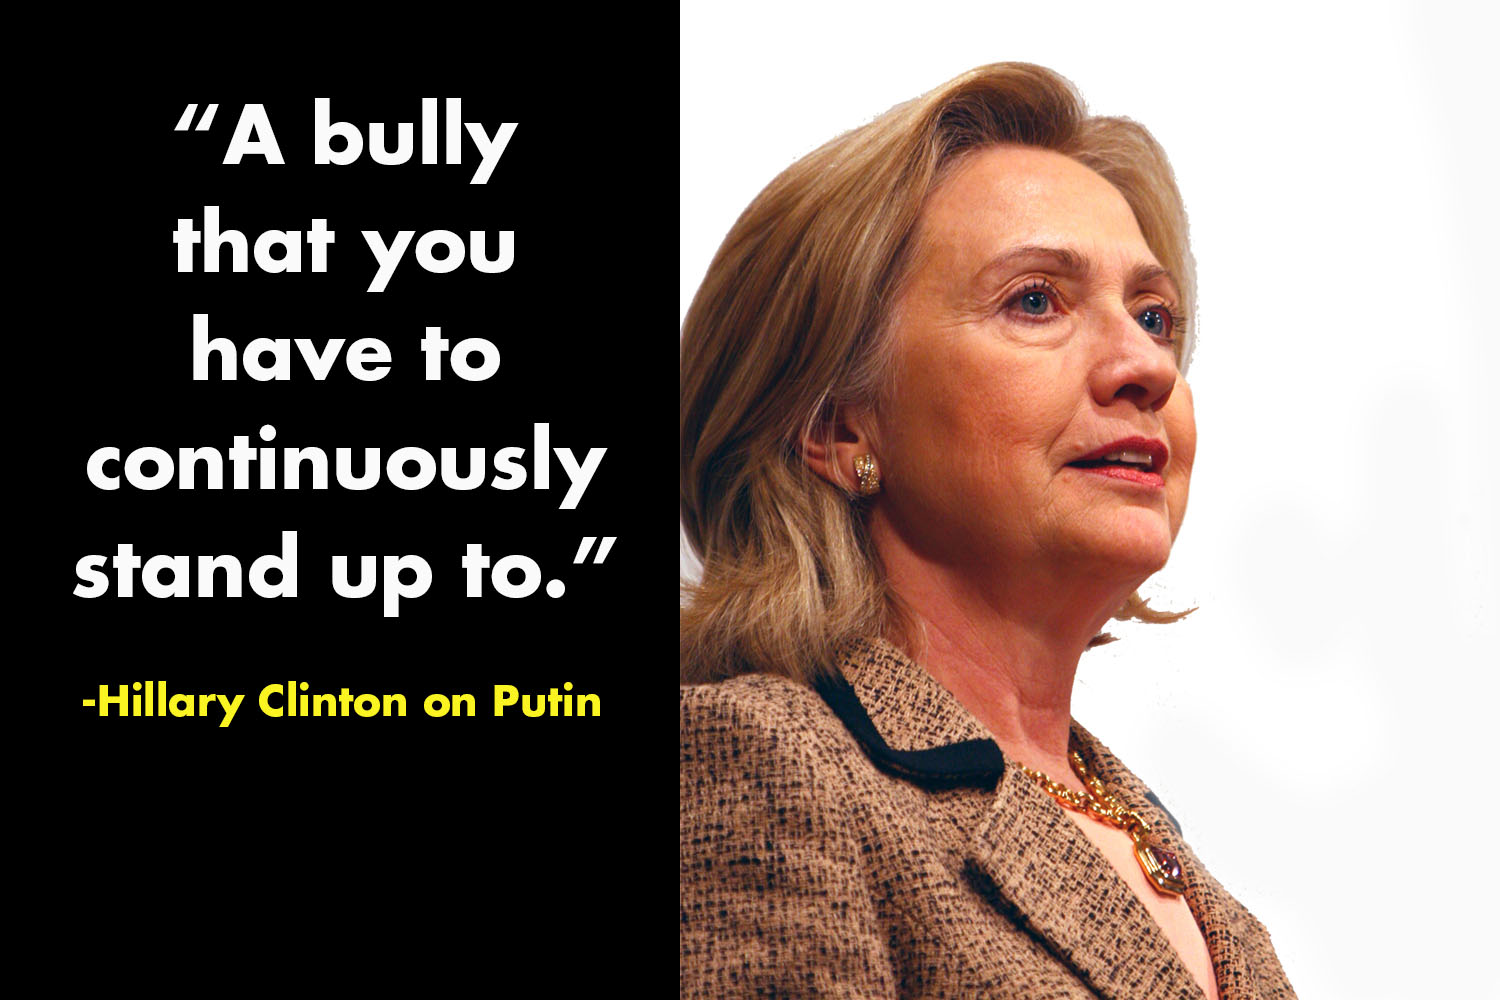 clinton-on-putin